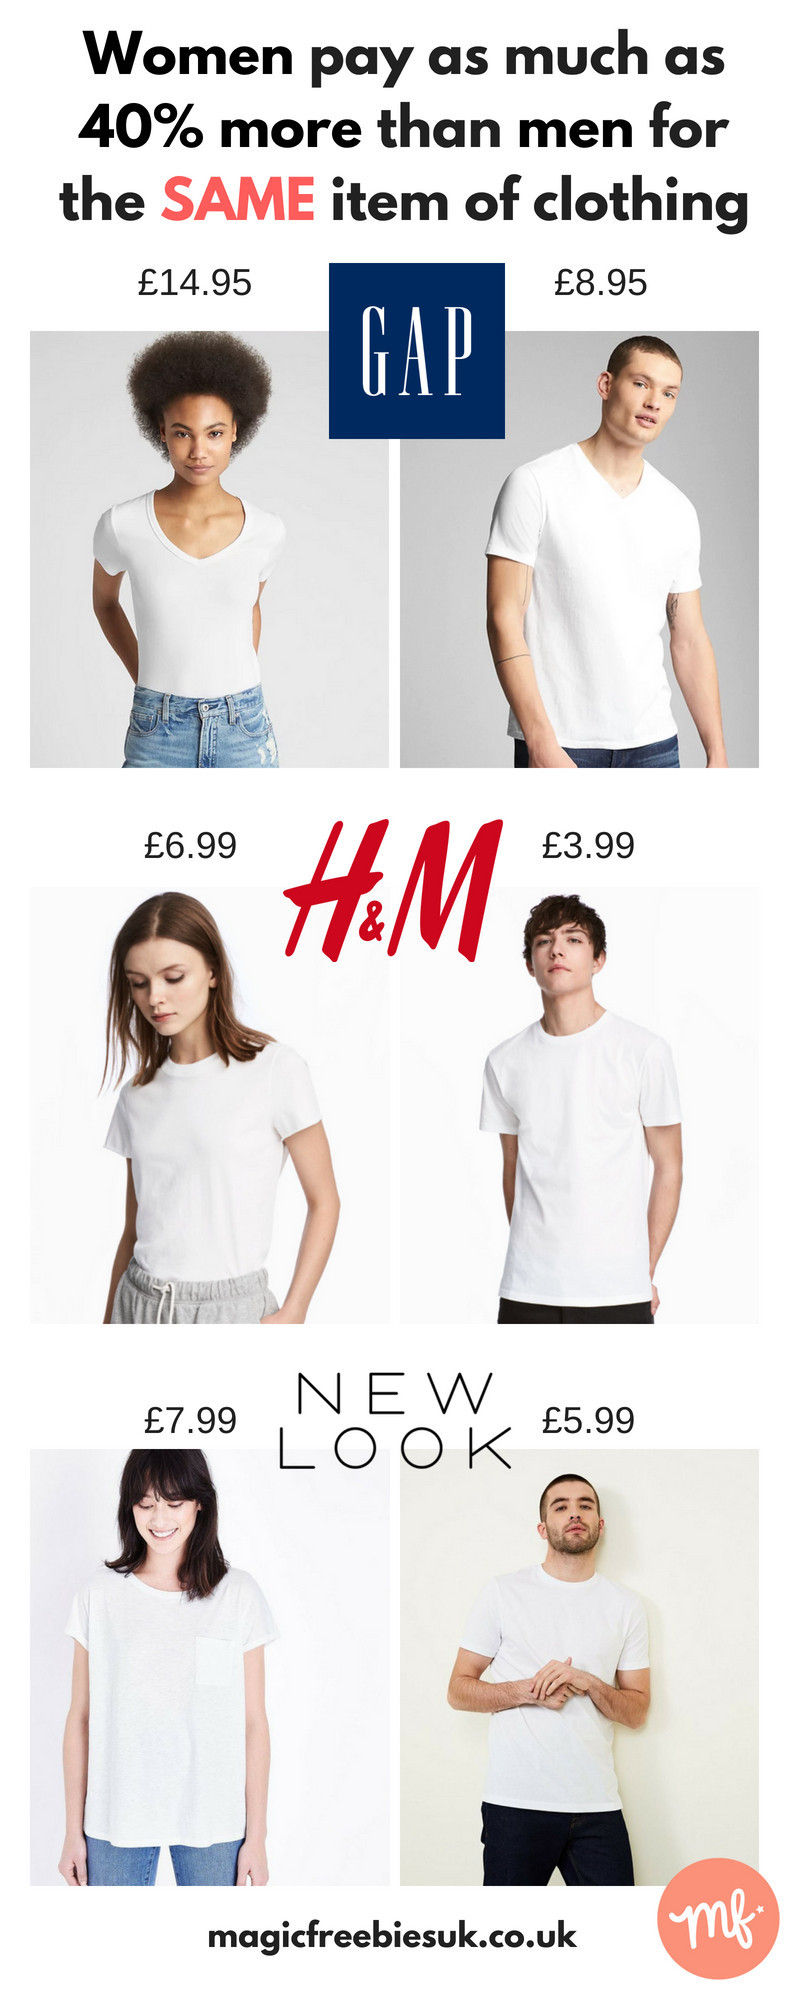 Infographic showing the price difference between white t-shirts for men and women